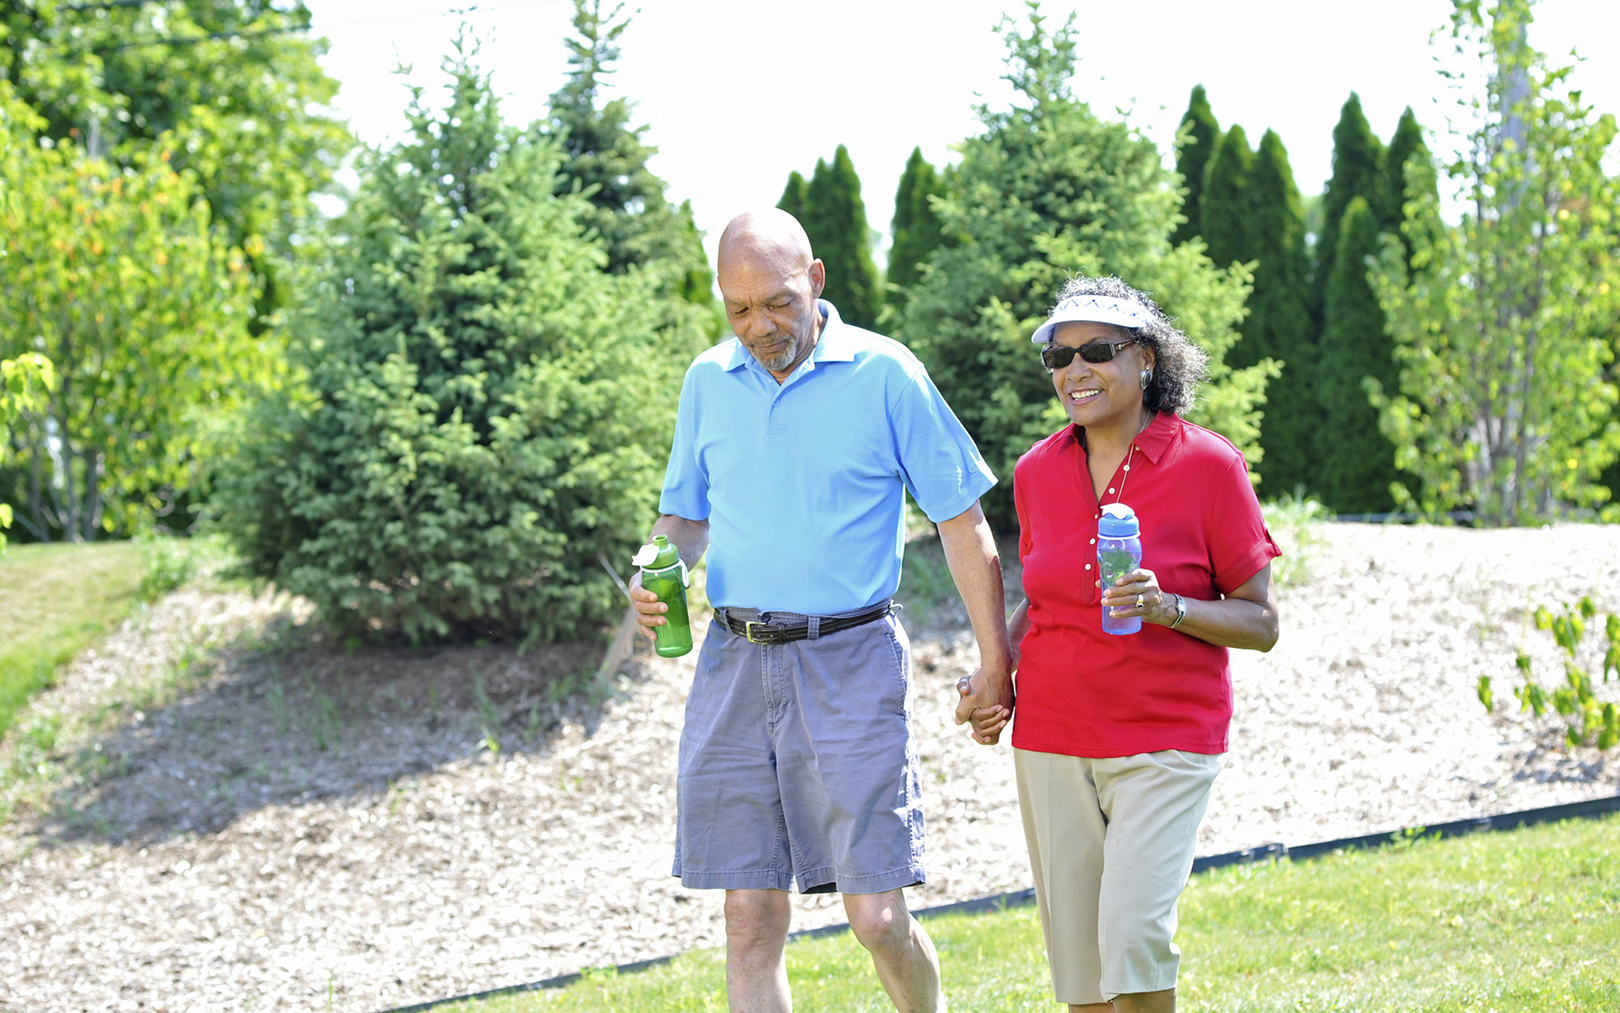 Senior Living Design After COVID-19 - Couple Walking